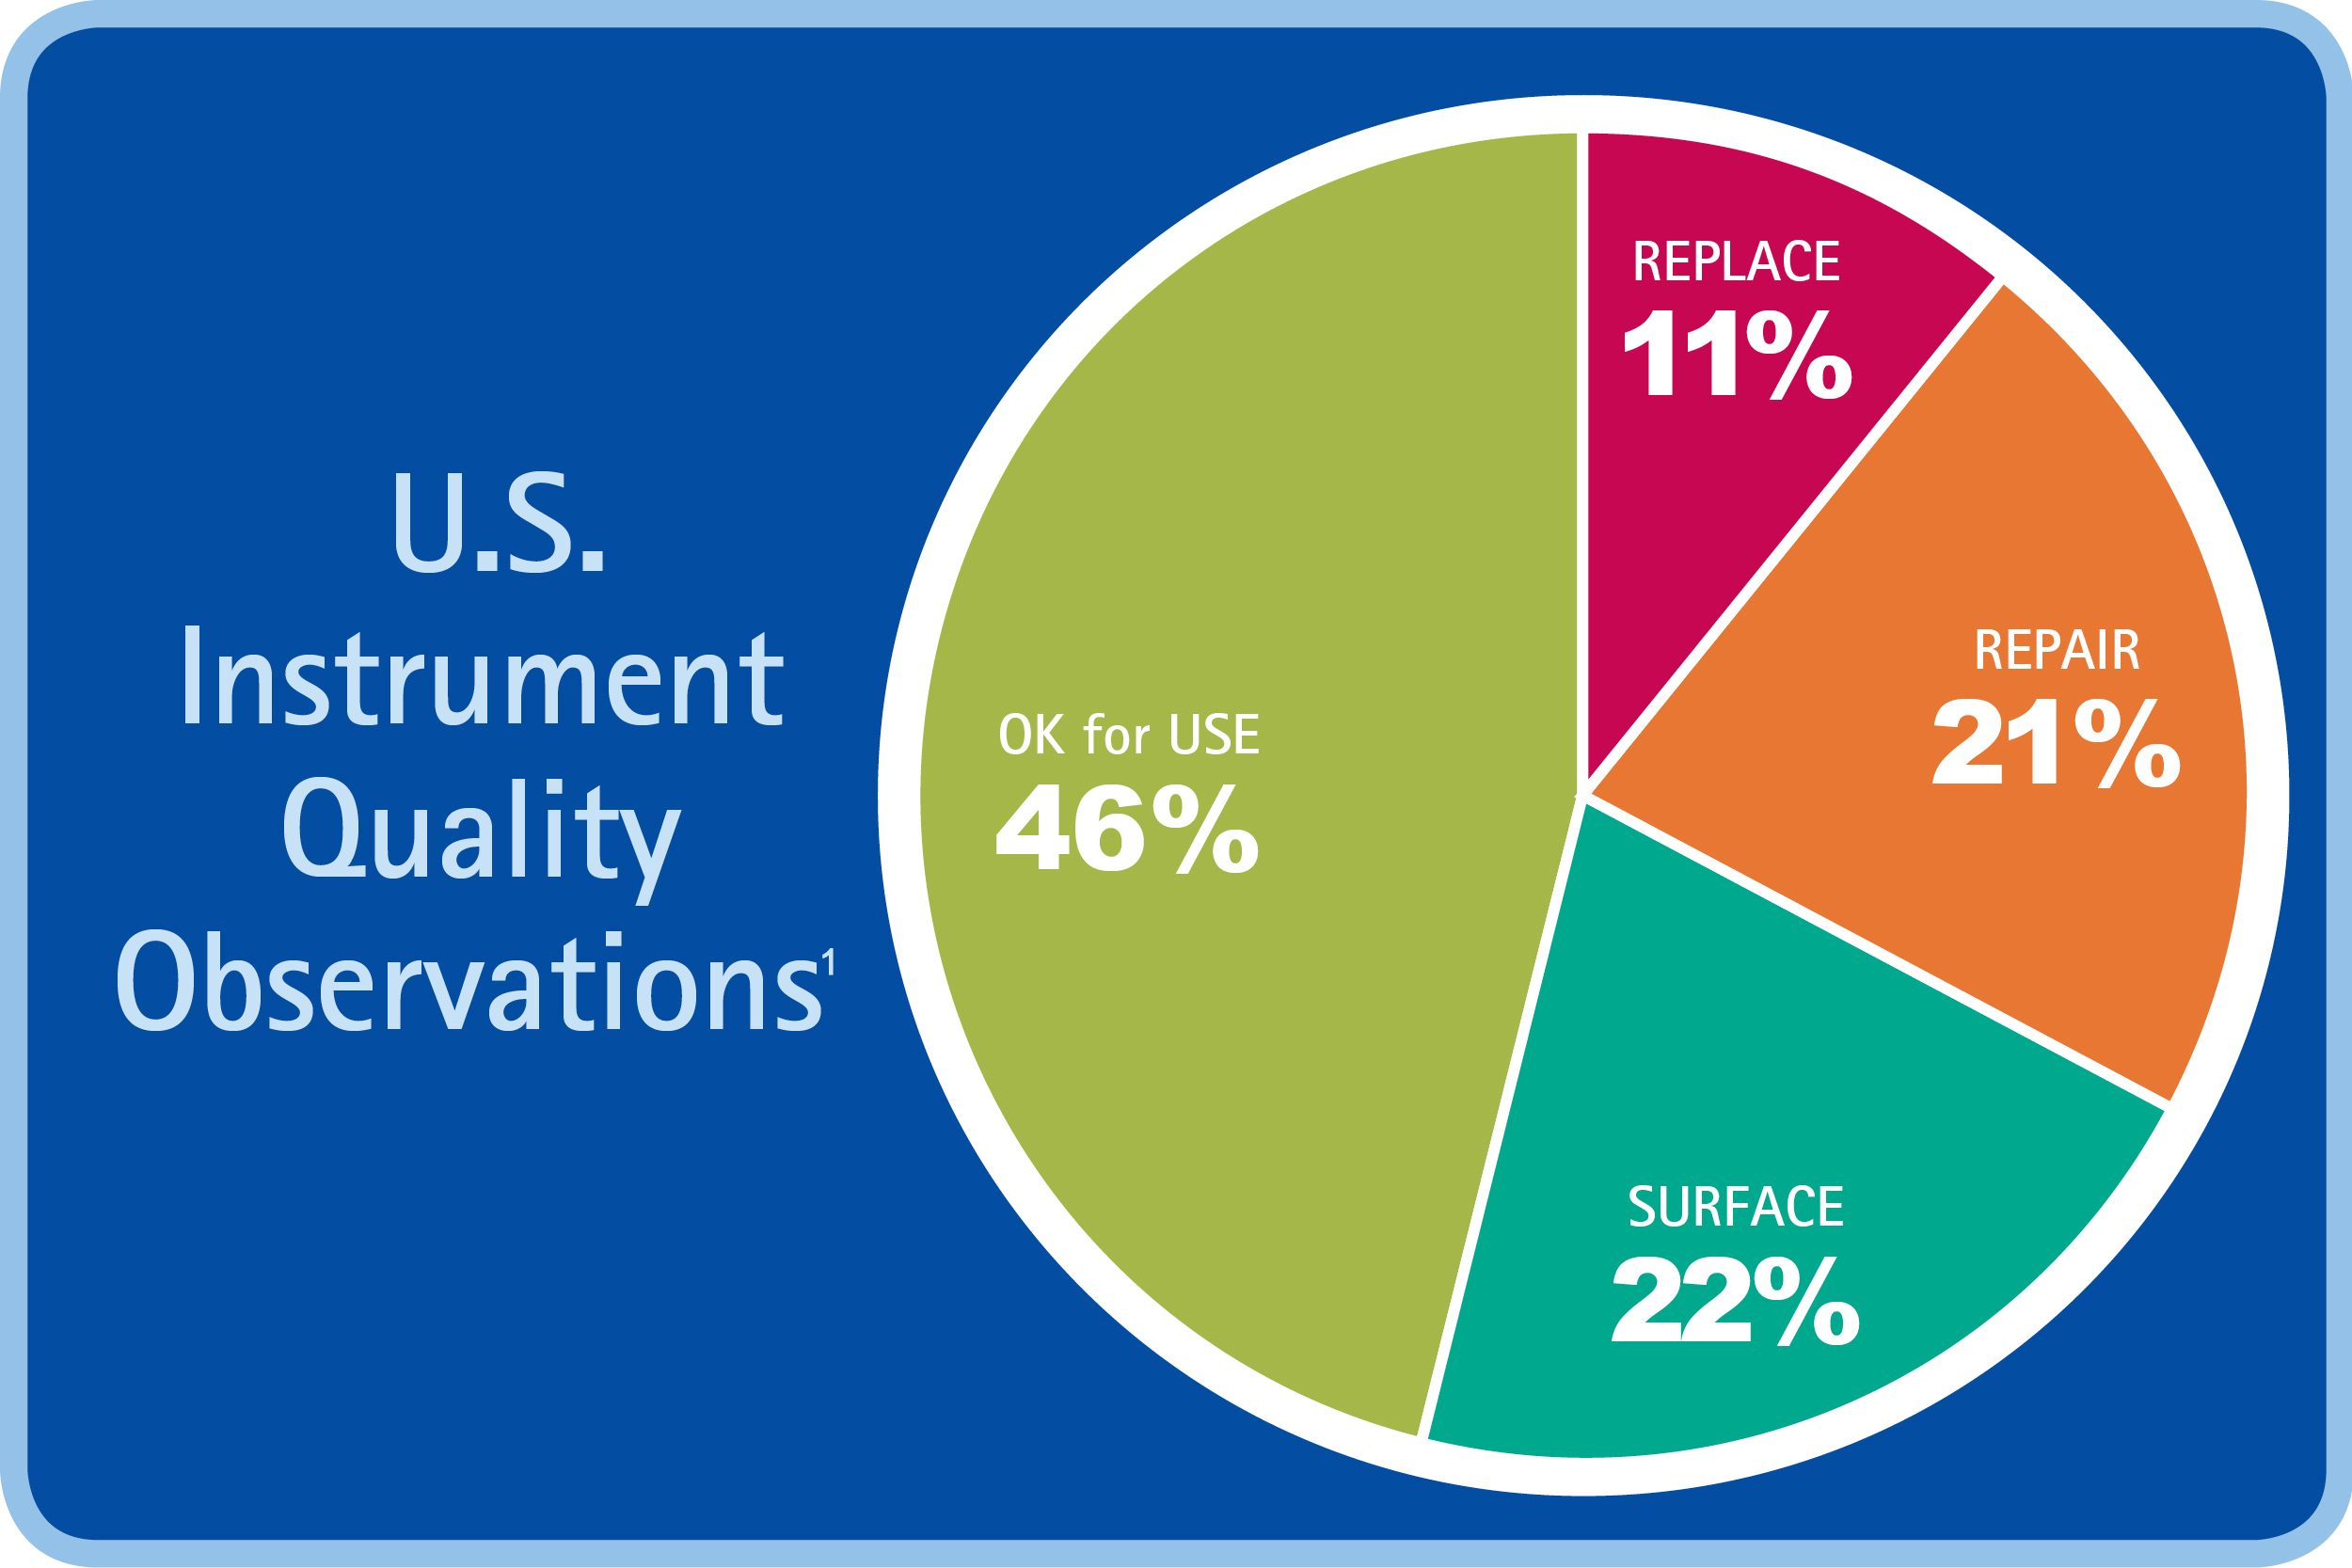 Pie chart showing percentage of US instrument quality observations